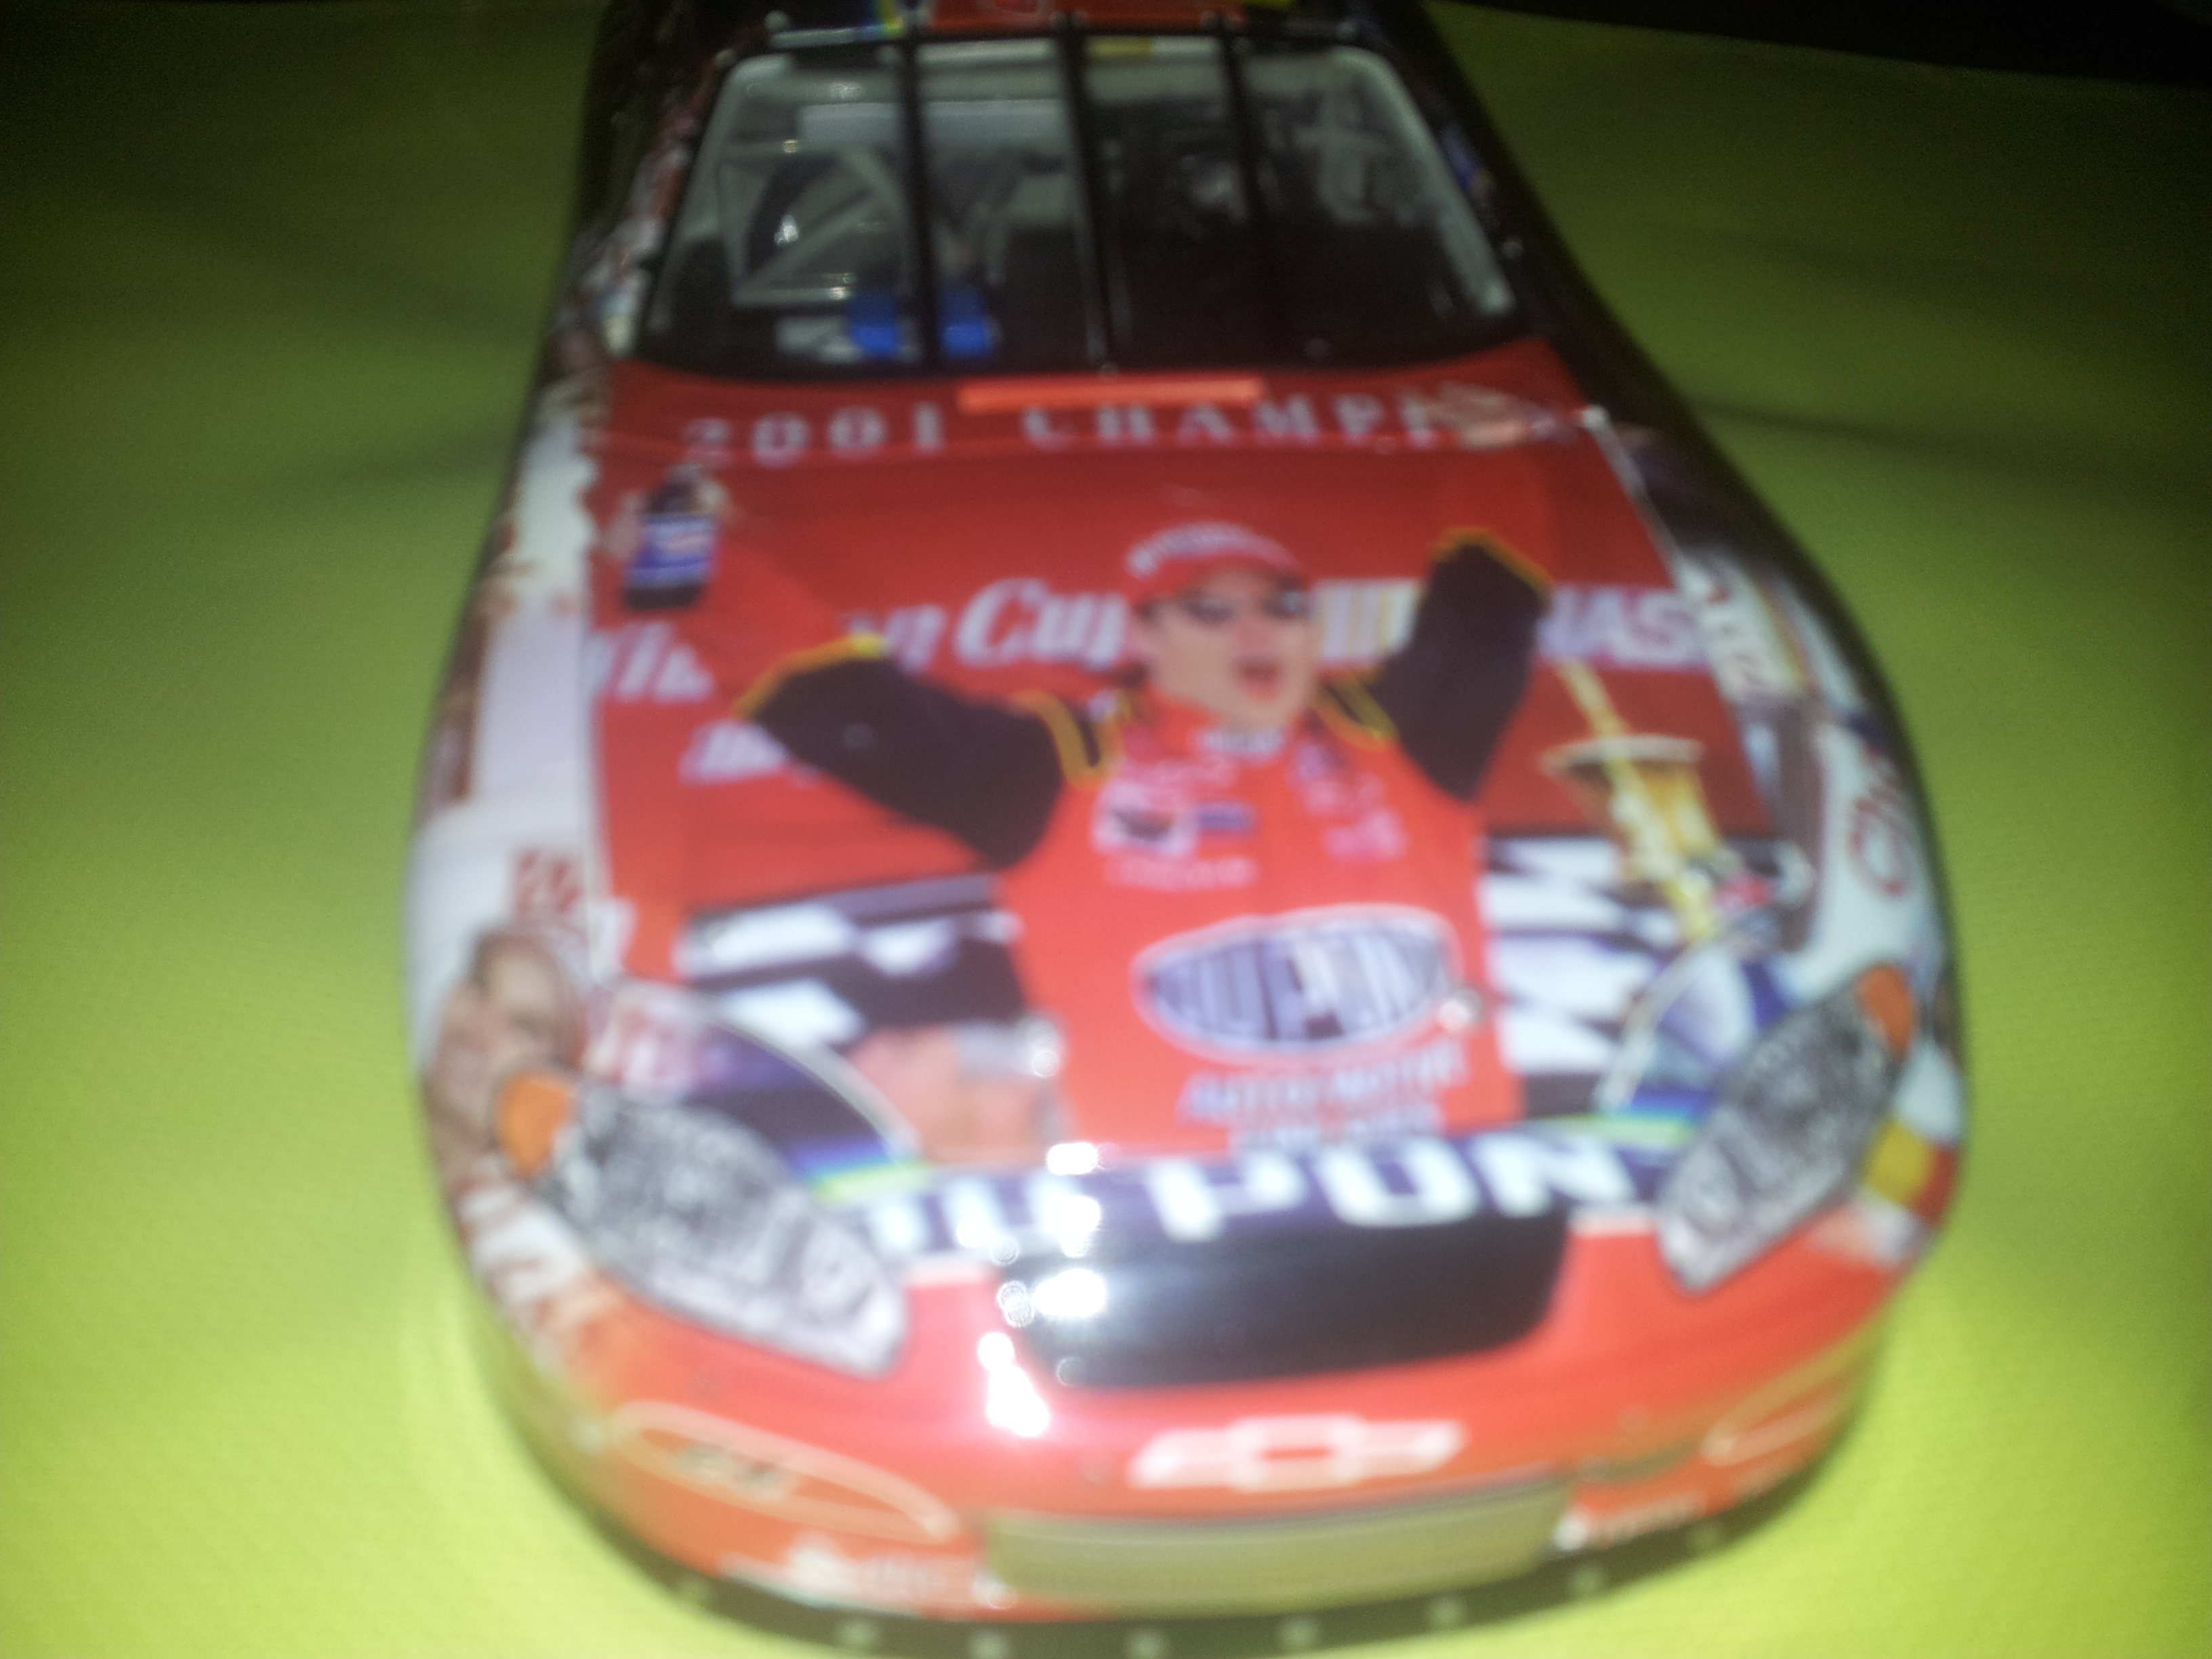 Nascar & Jeff Gordon's tribute 81654120150212110319